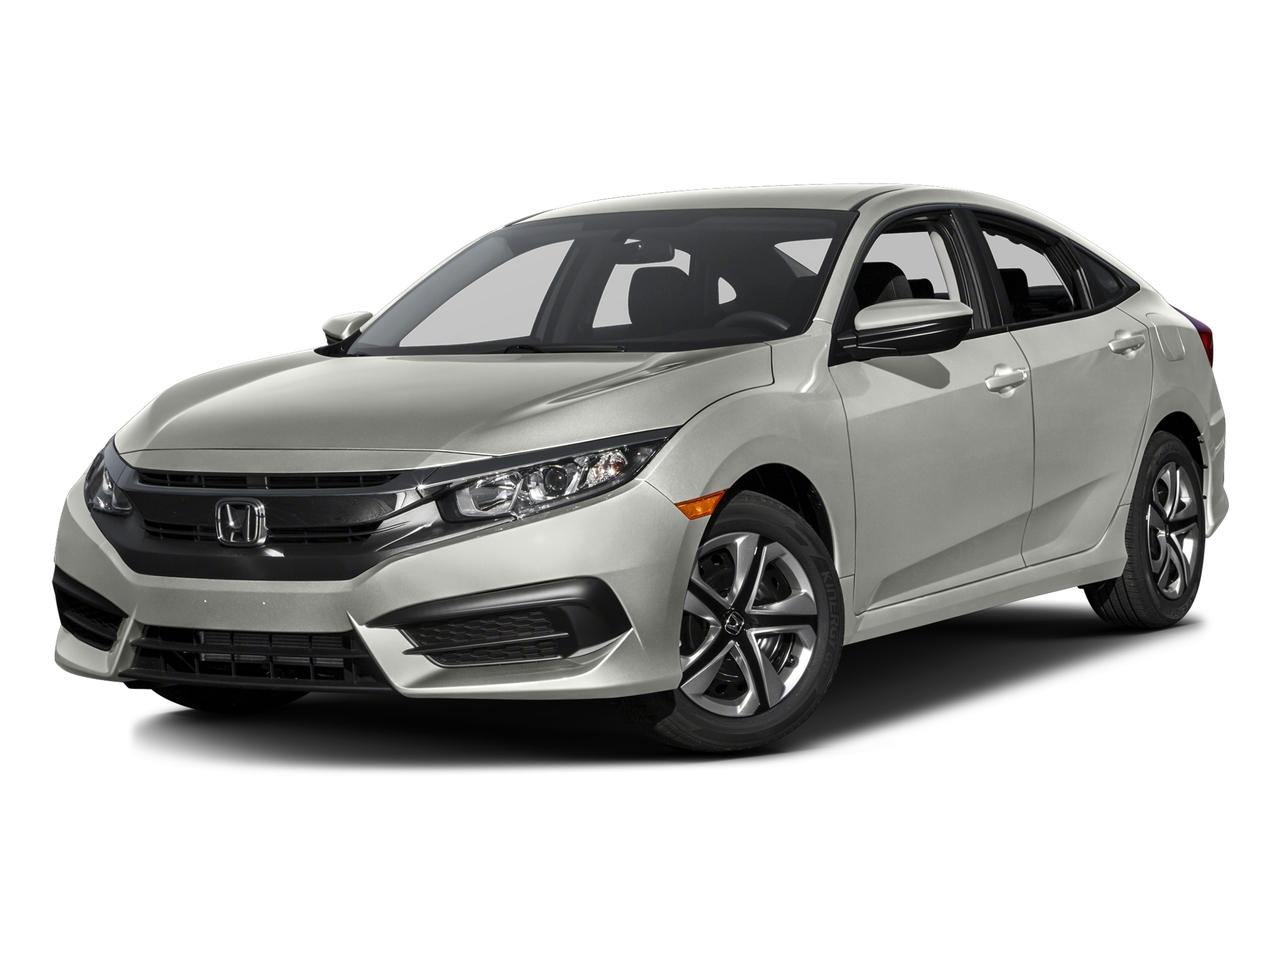 2016 Honda Civic Sedan Vehicle Photo in Anaheim, CA 92806